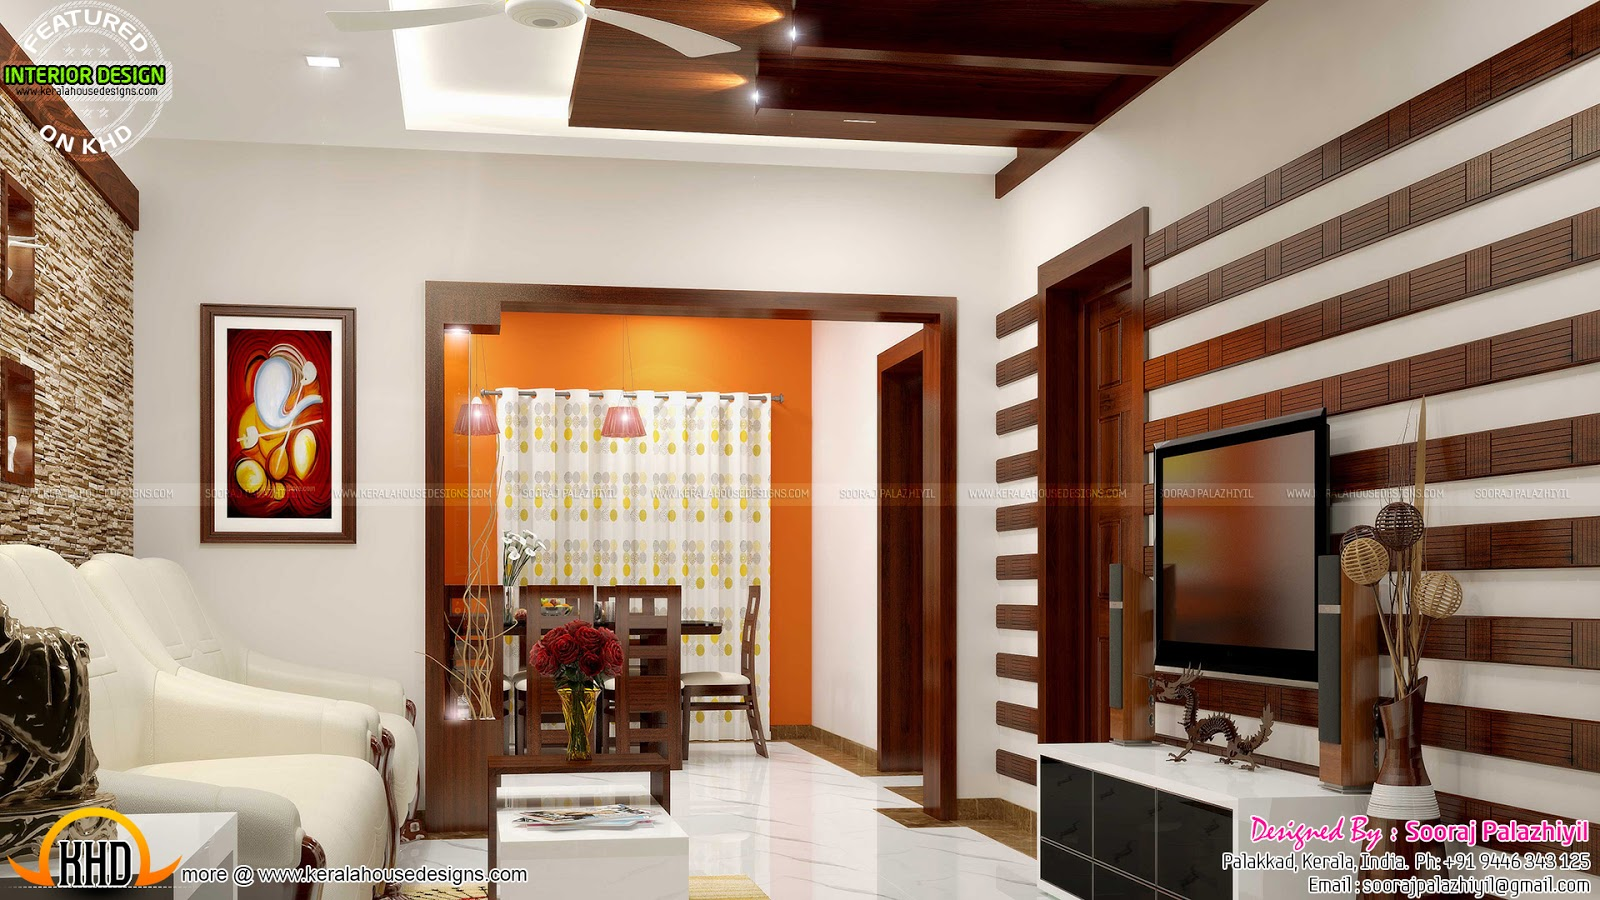 Simple apartment interior in kerala kerala home design for Simple home interior design images